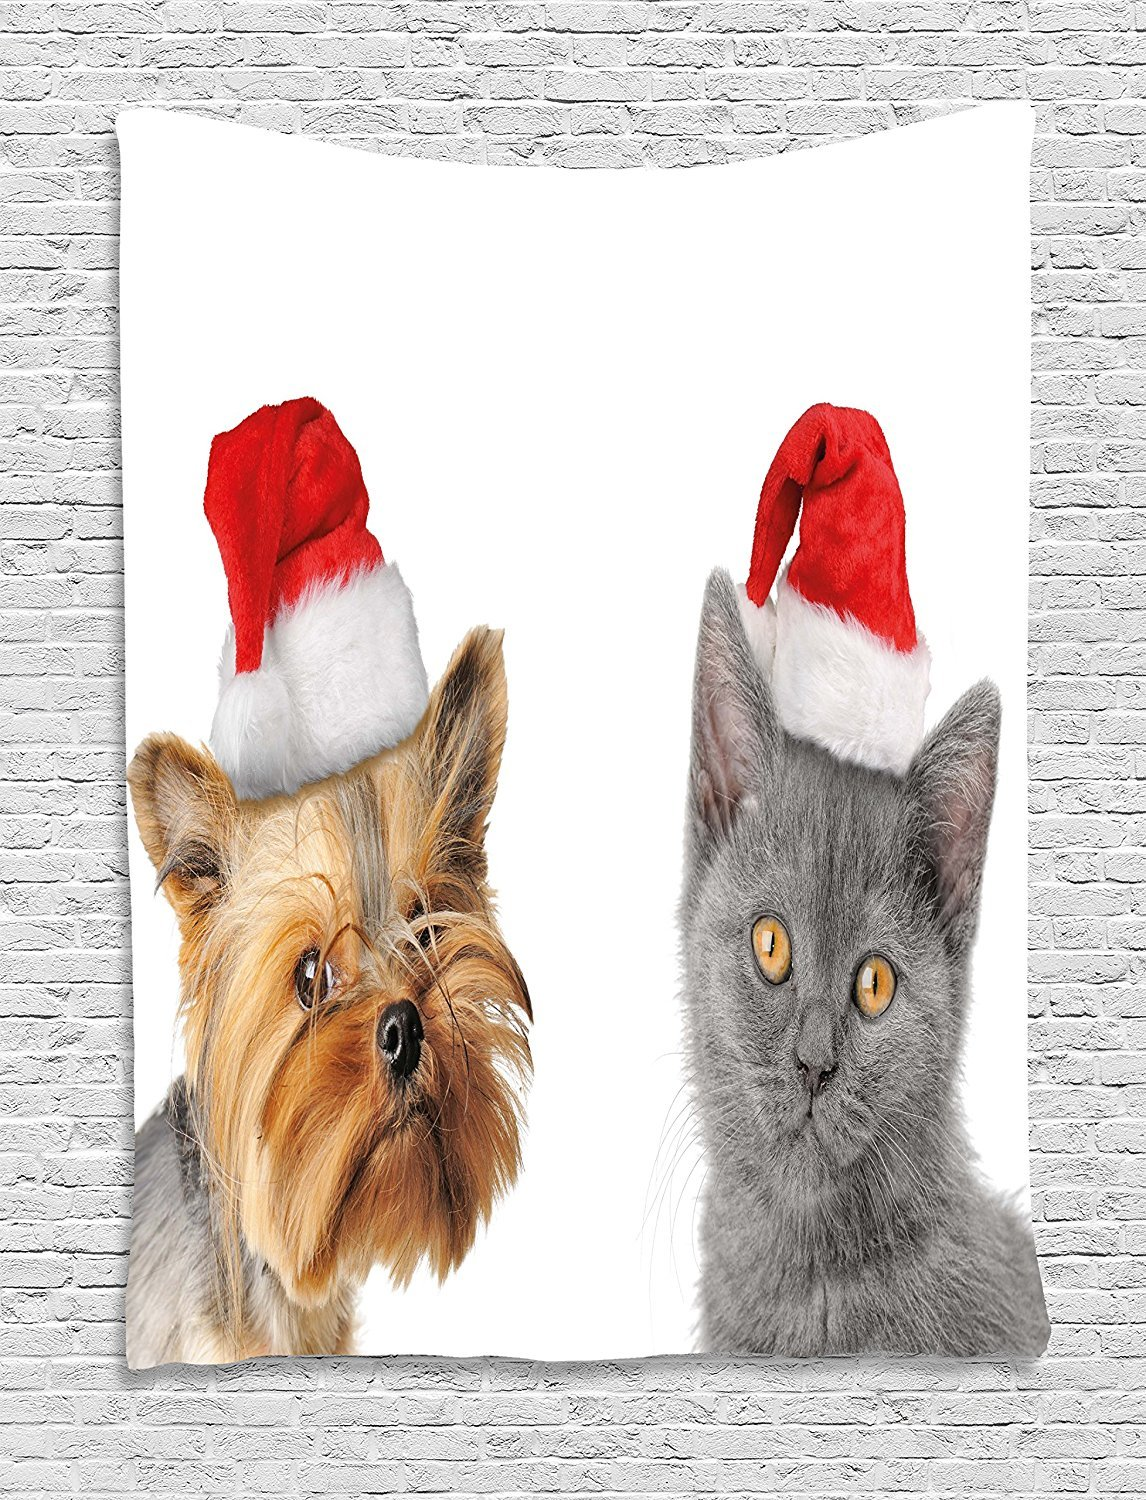 asddcdfdd Christmas Tapestry, Adorable Cat and Dog with Xmas Hats Domestic Pet Animals Holiday Celebration, Wall Hanging for Bedroom Living Room Dorm, 60 W X 80 L Inches, Orange Grey Red